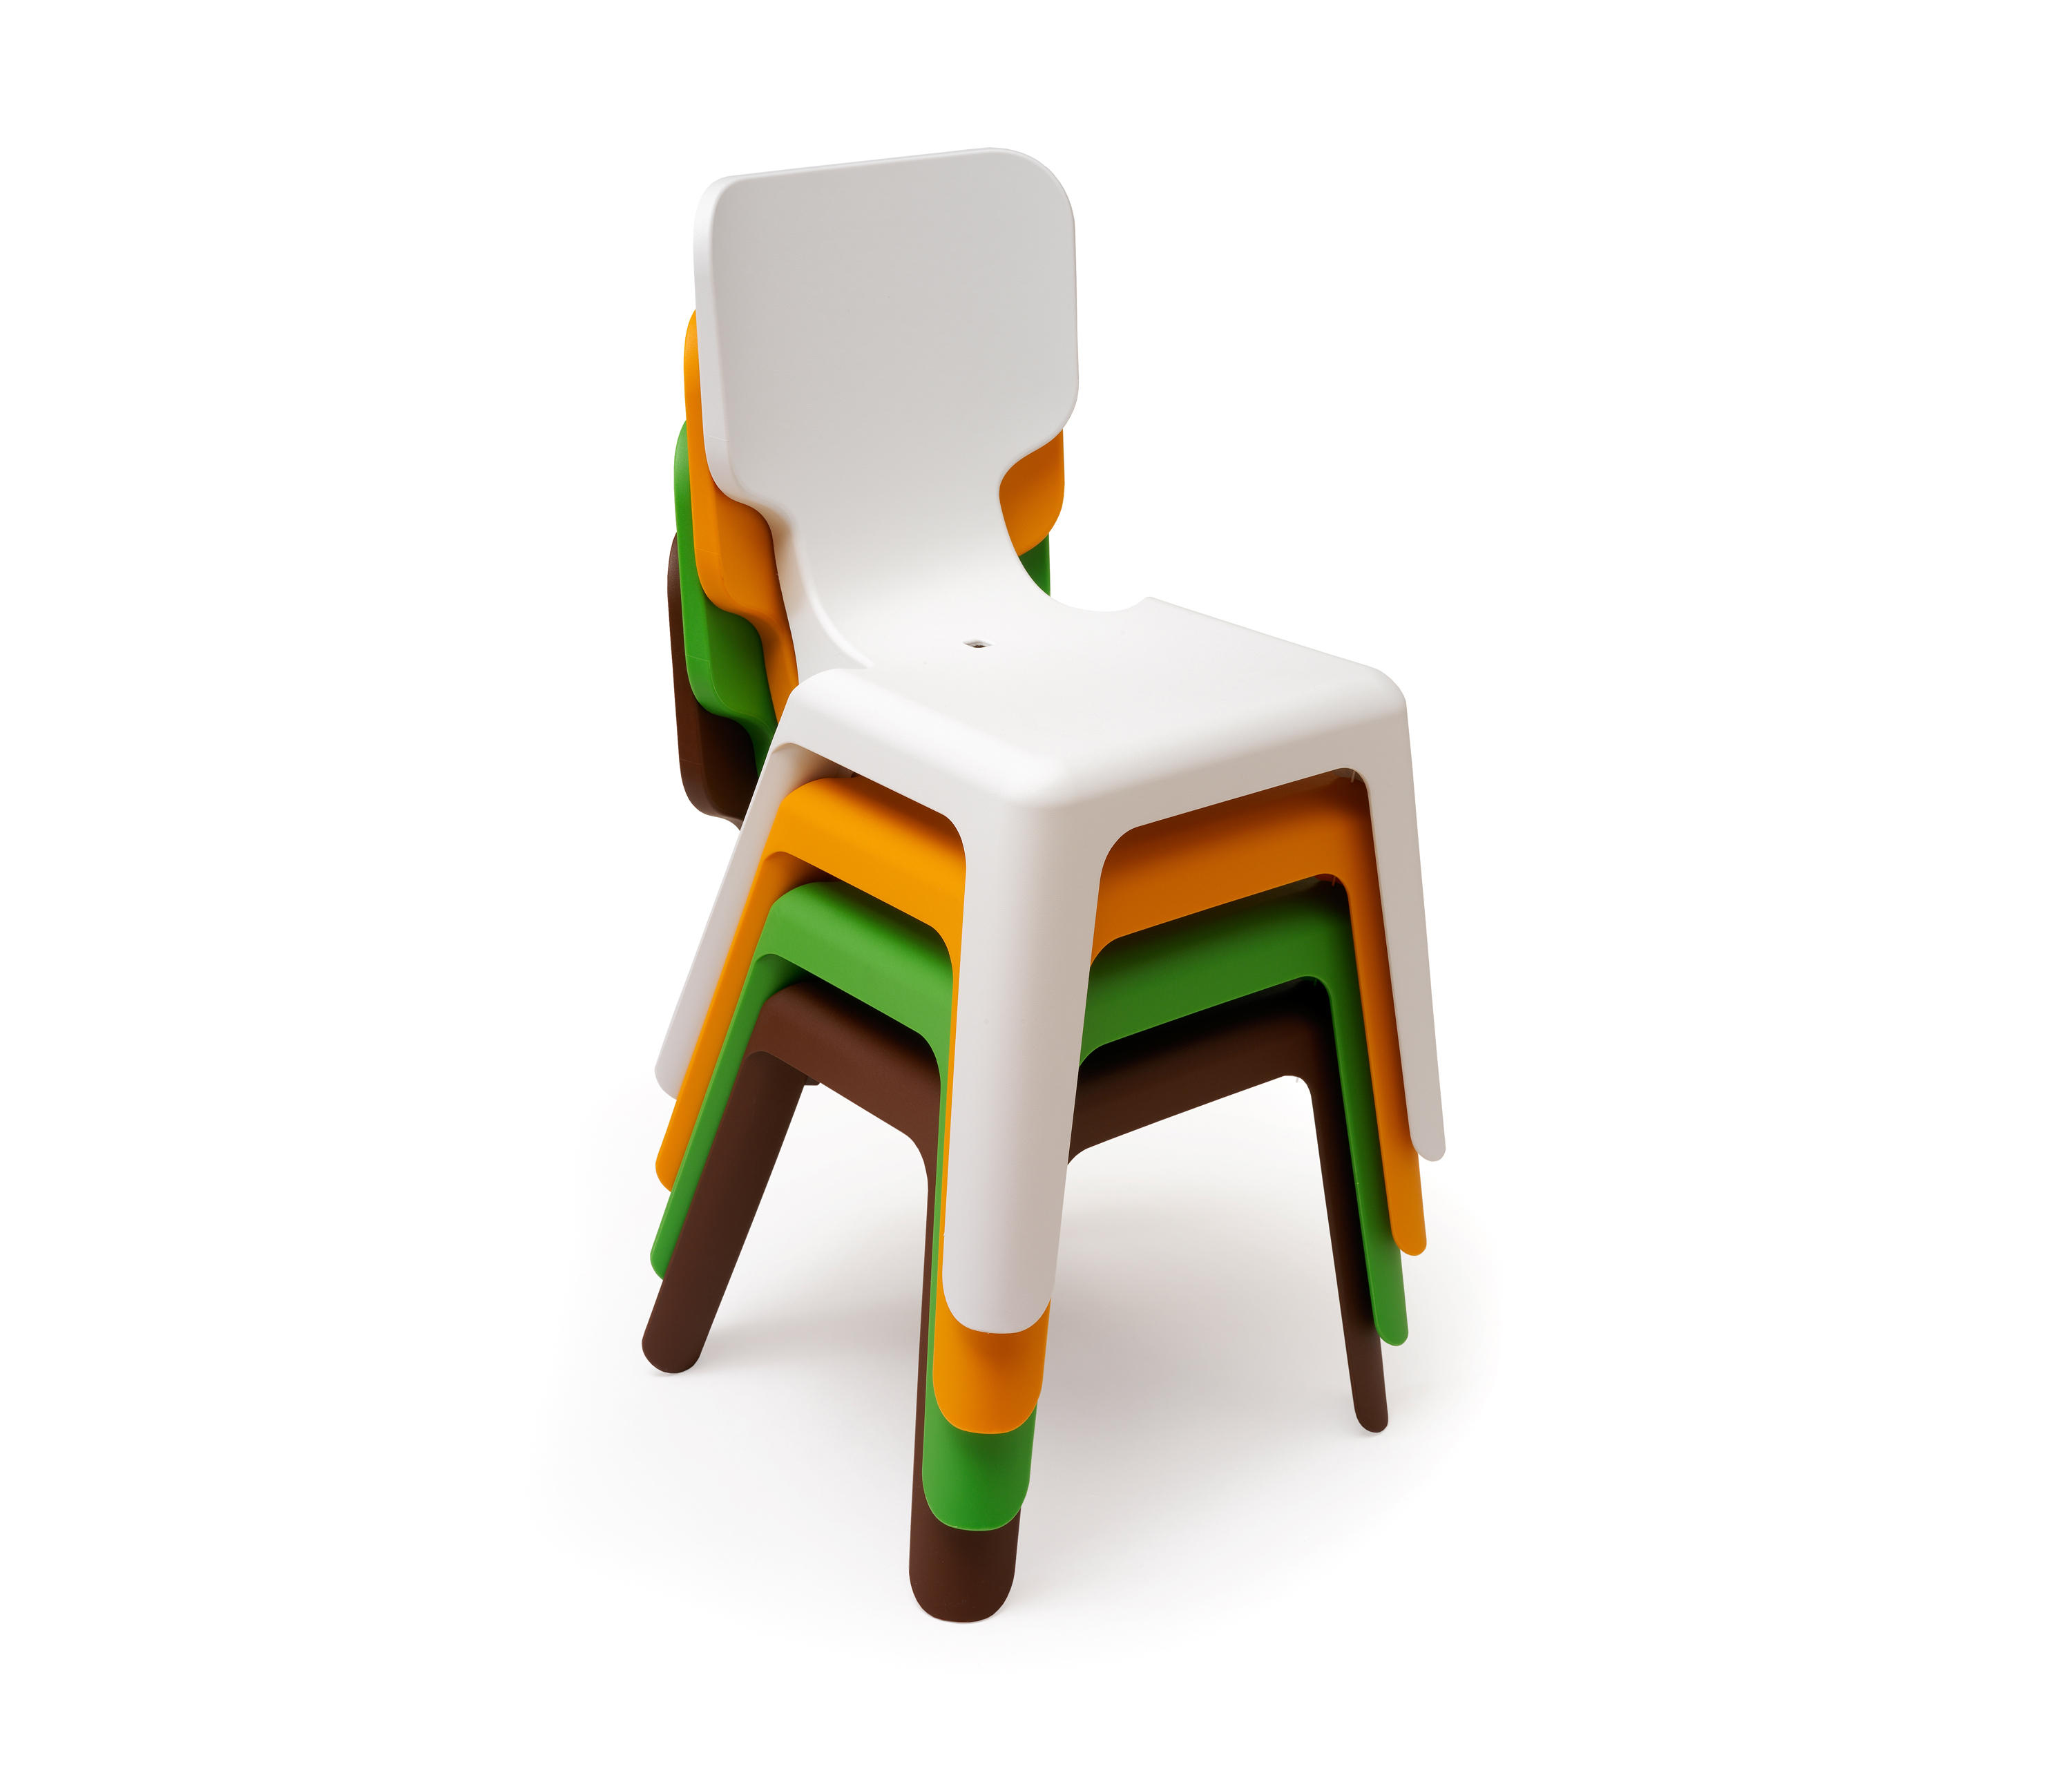 Alma Chair - High quality designer products | Architonic